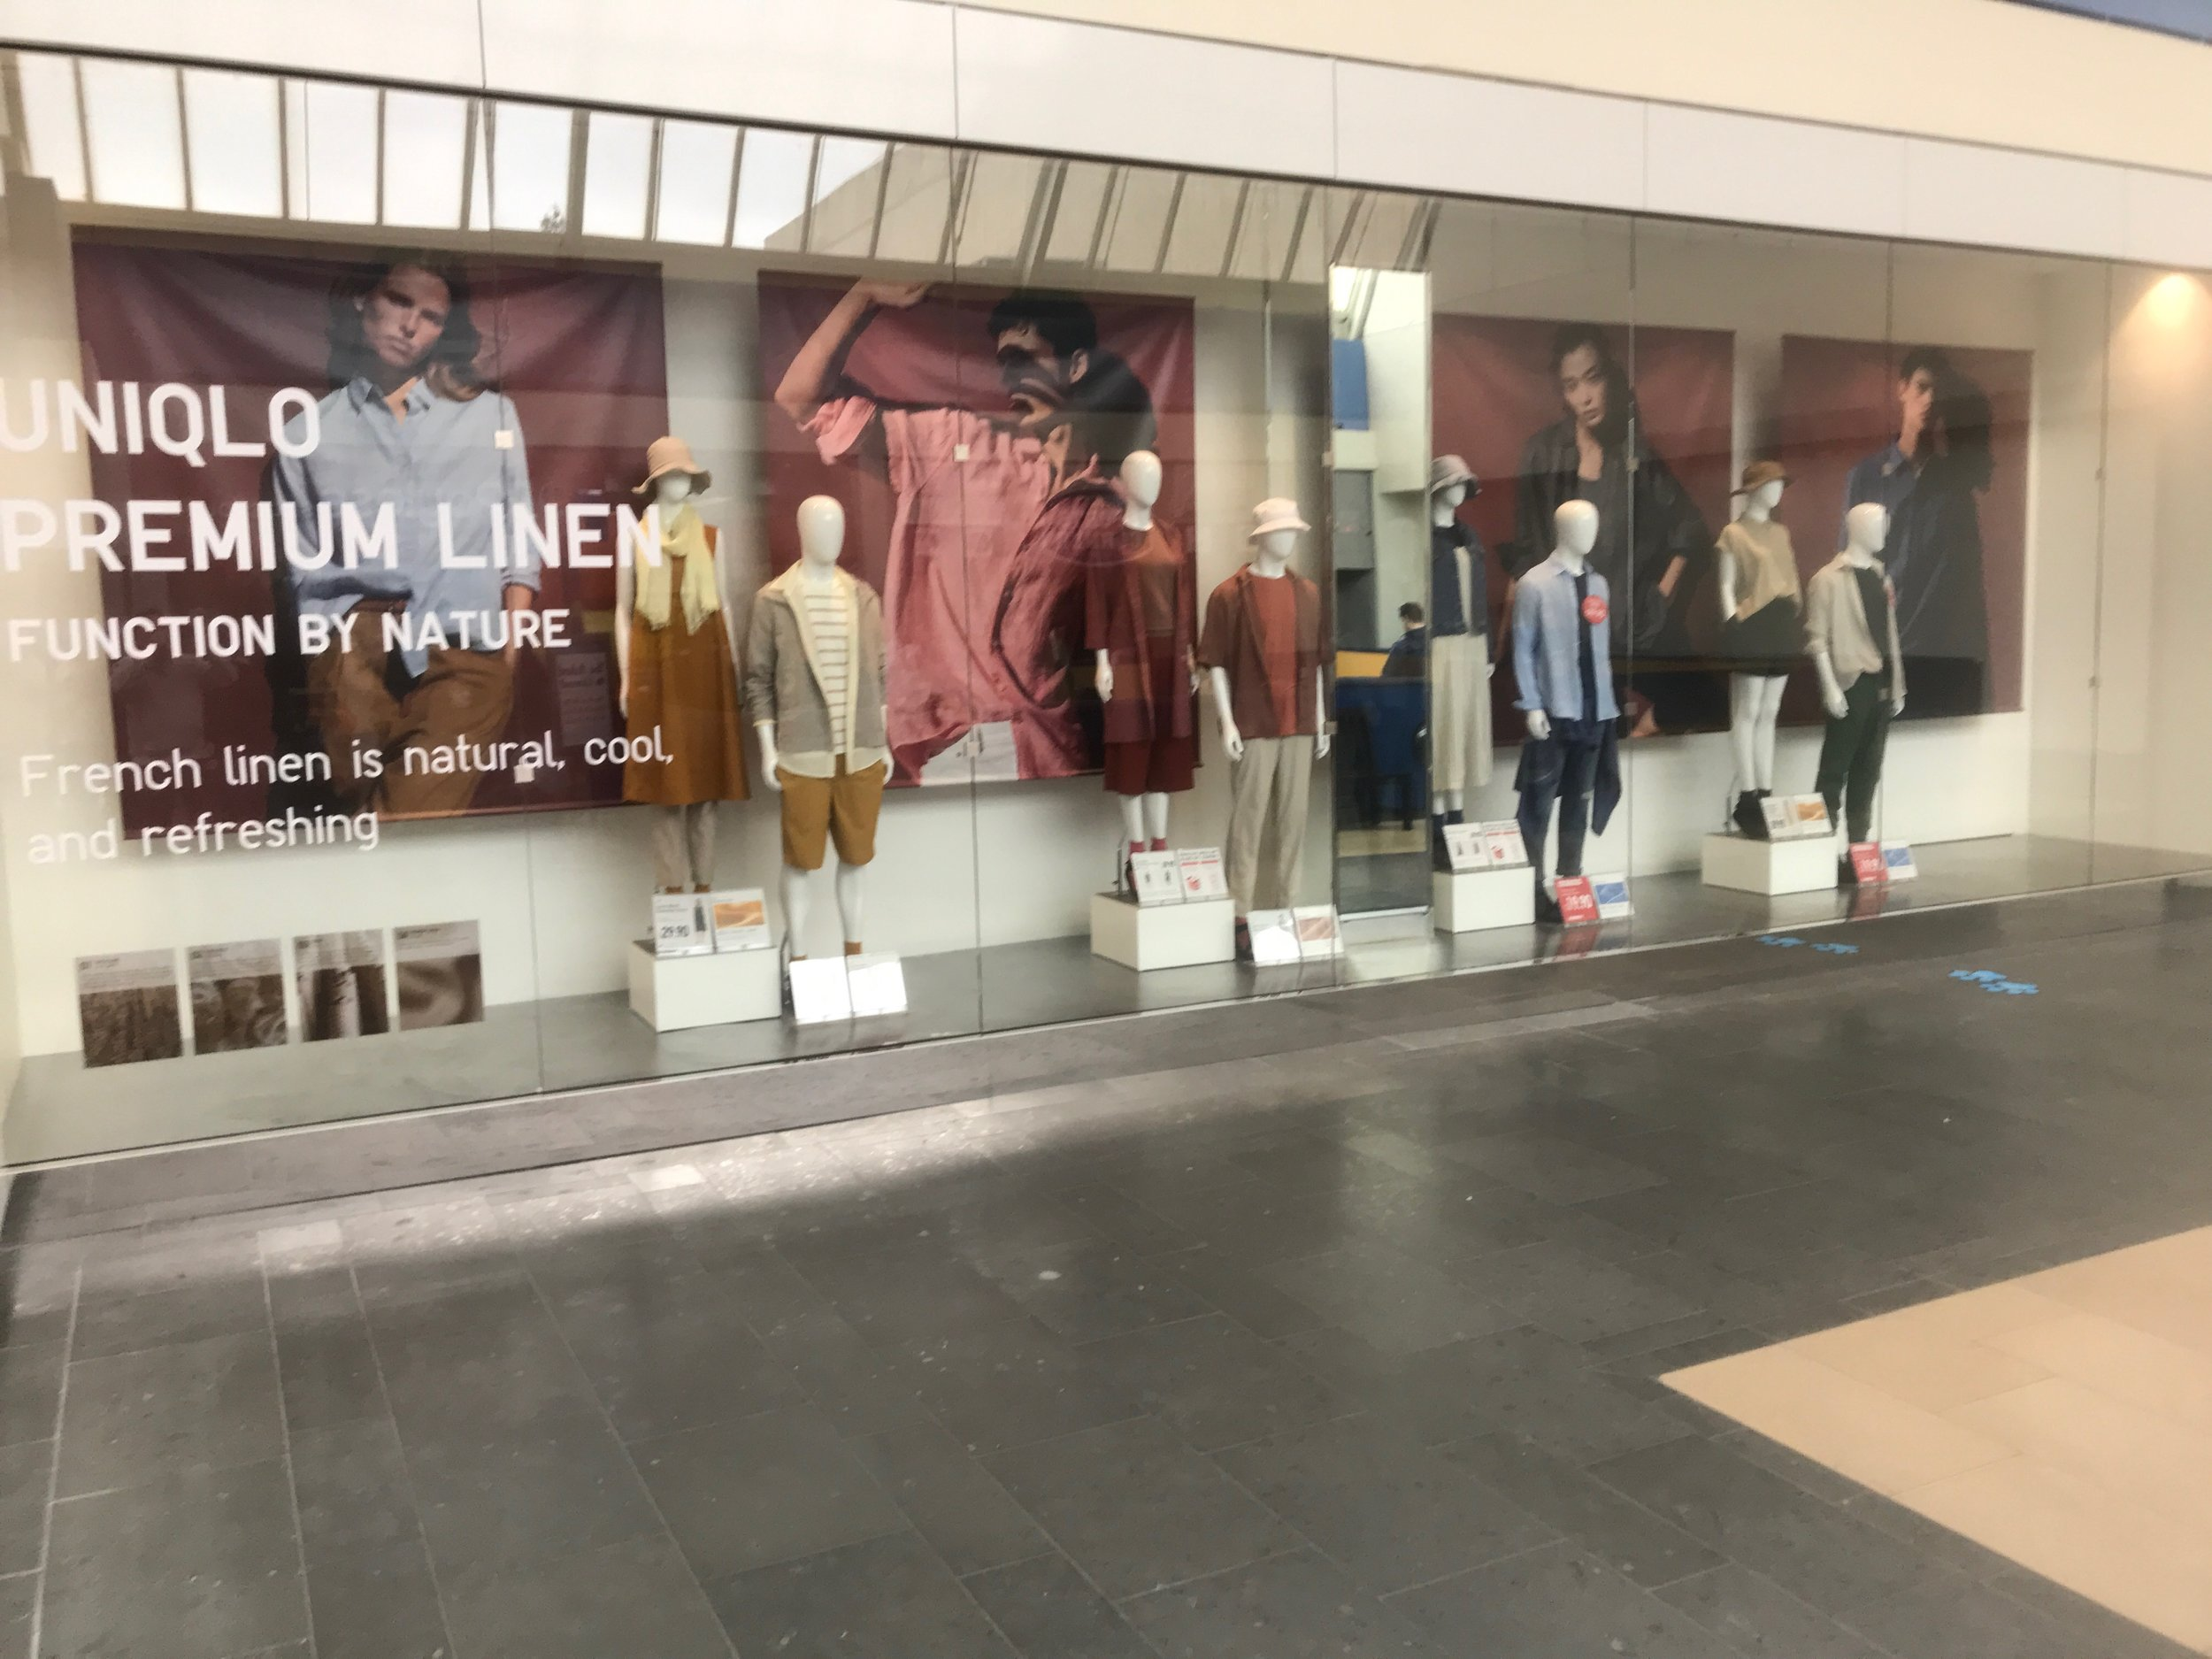 Uniqlo Display WIndow copy 2.jpg